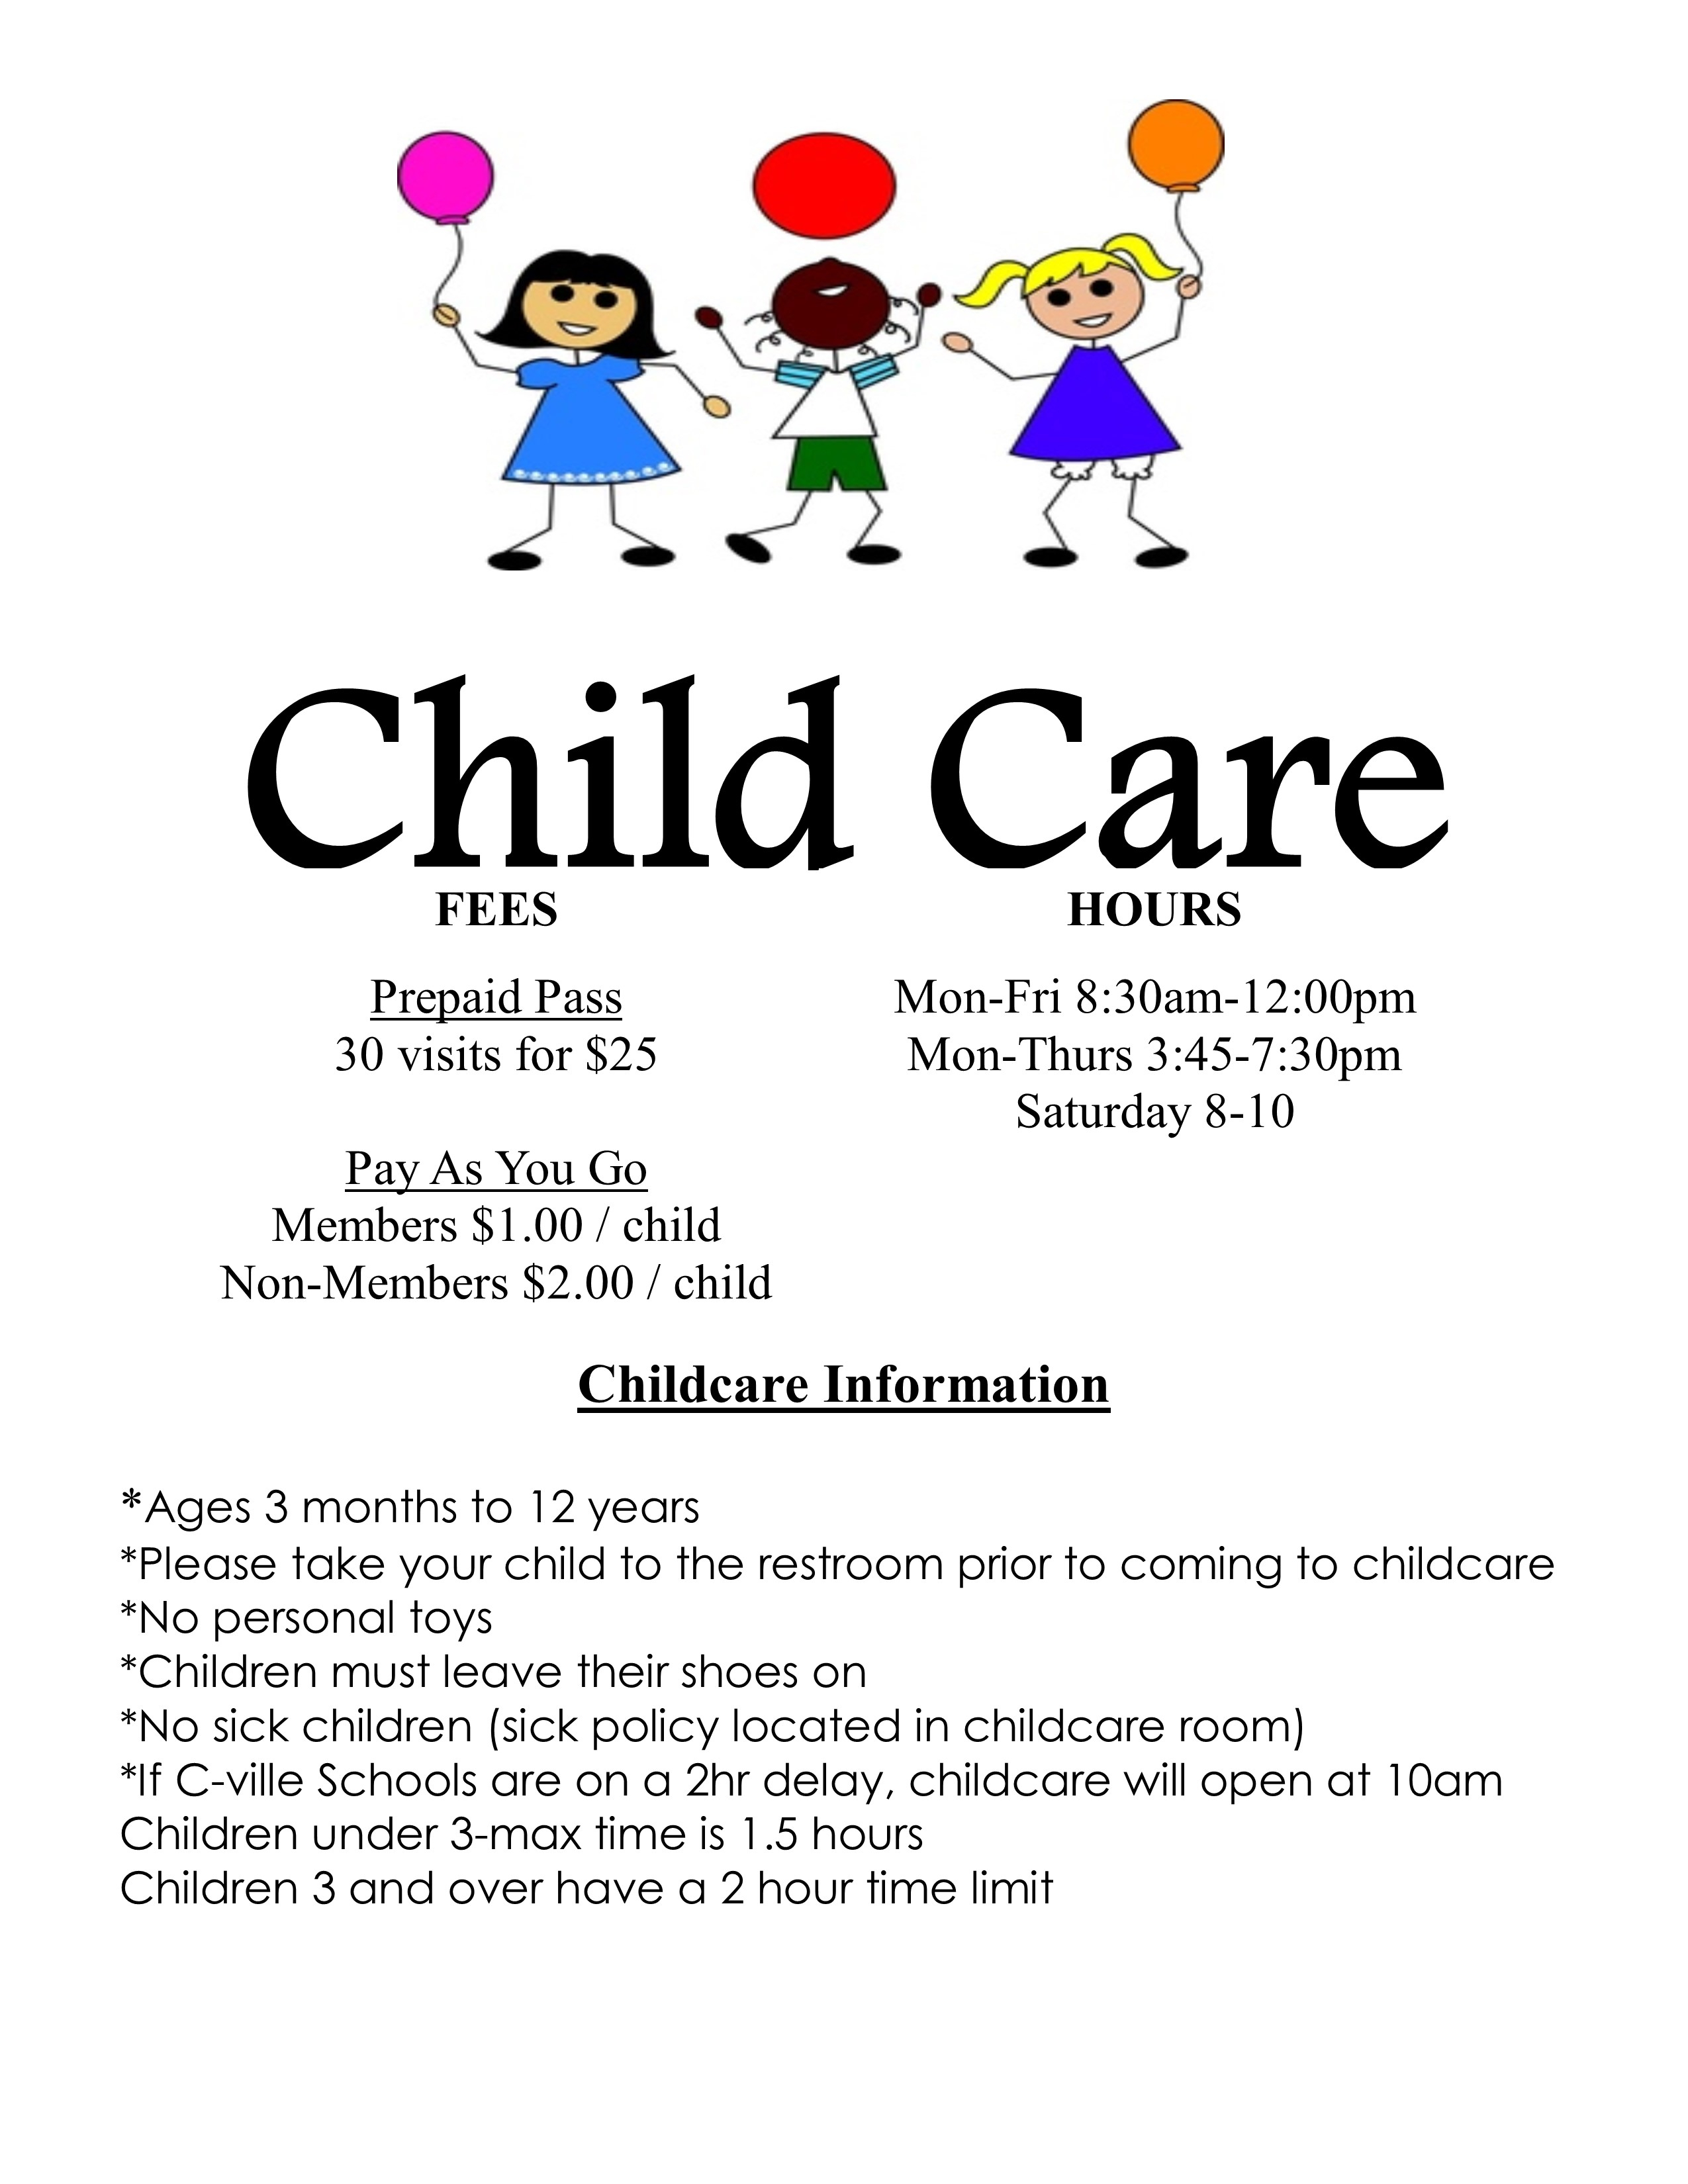 002 Home Child Care Flyers 234354 Template Ideas Free Daycare Flyer - Free Printable Home Daycare Flyers